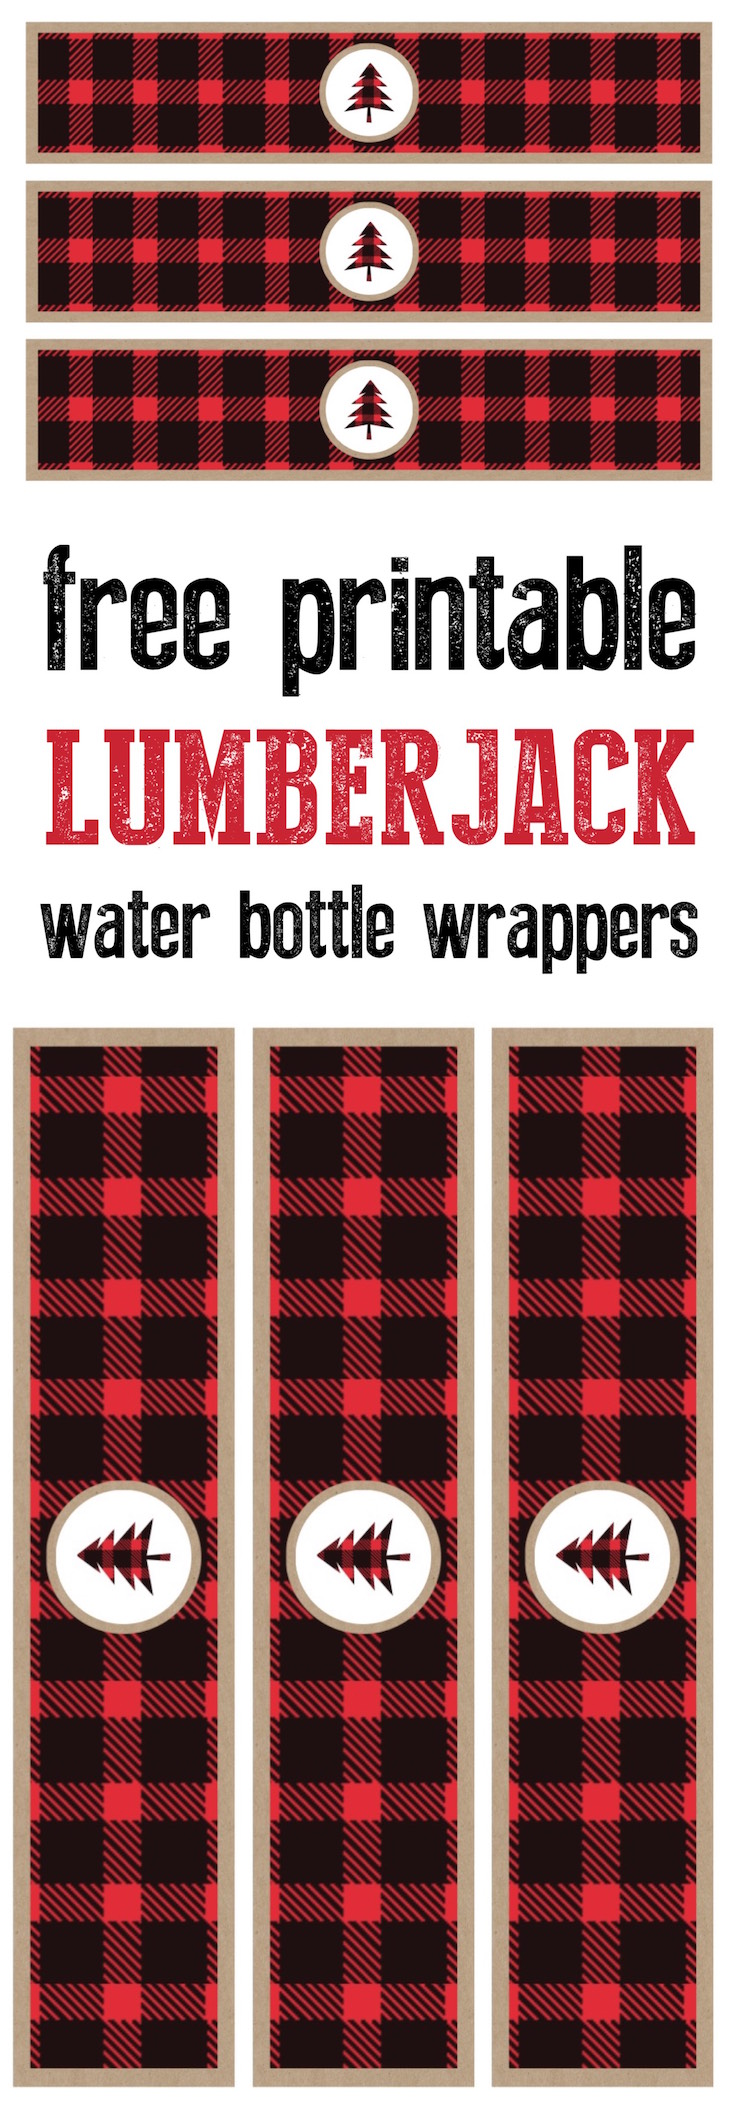 Lumberjack water bottle wrapper free printable. Print these labels for your lumberjack birthday party or baby shower or woodsy wedding.